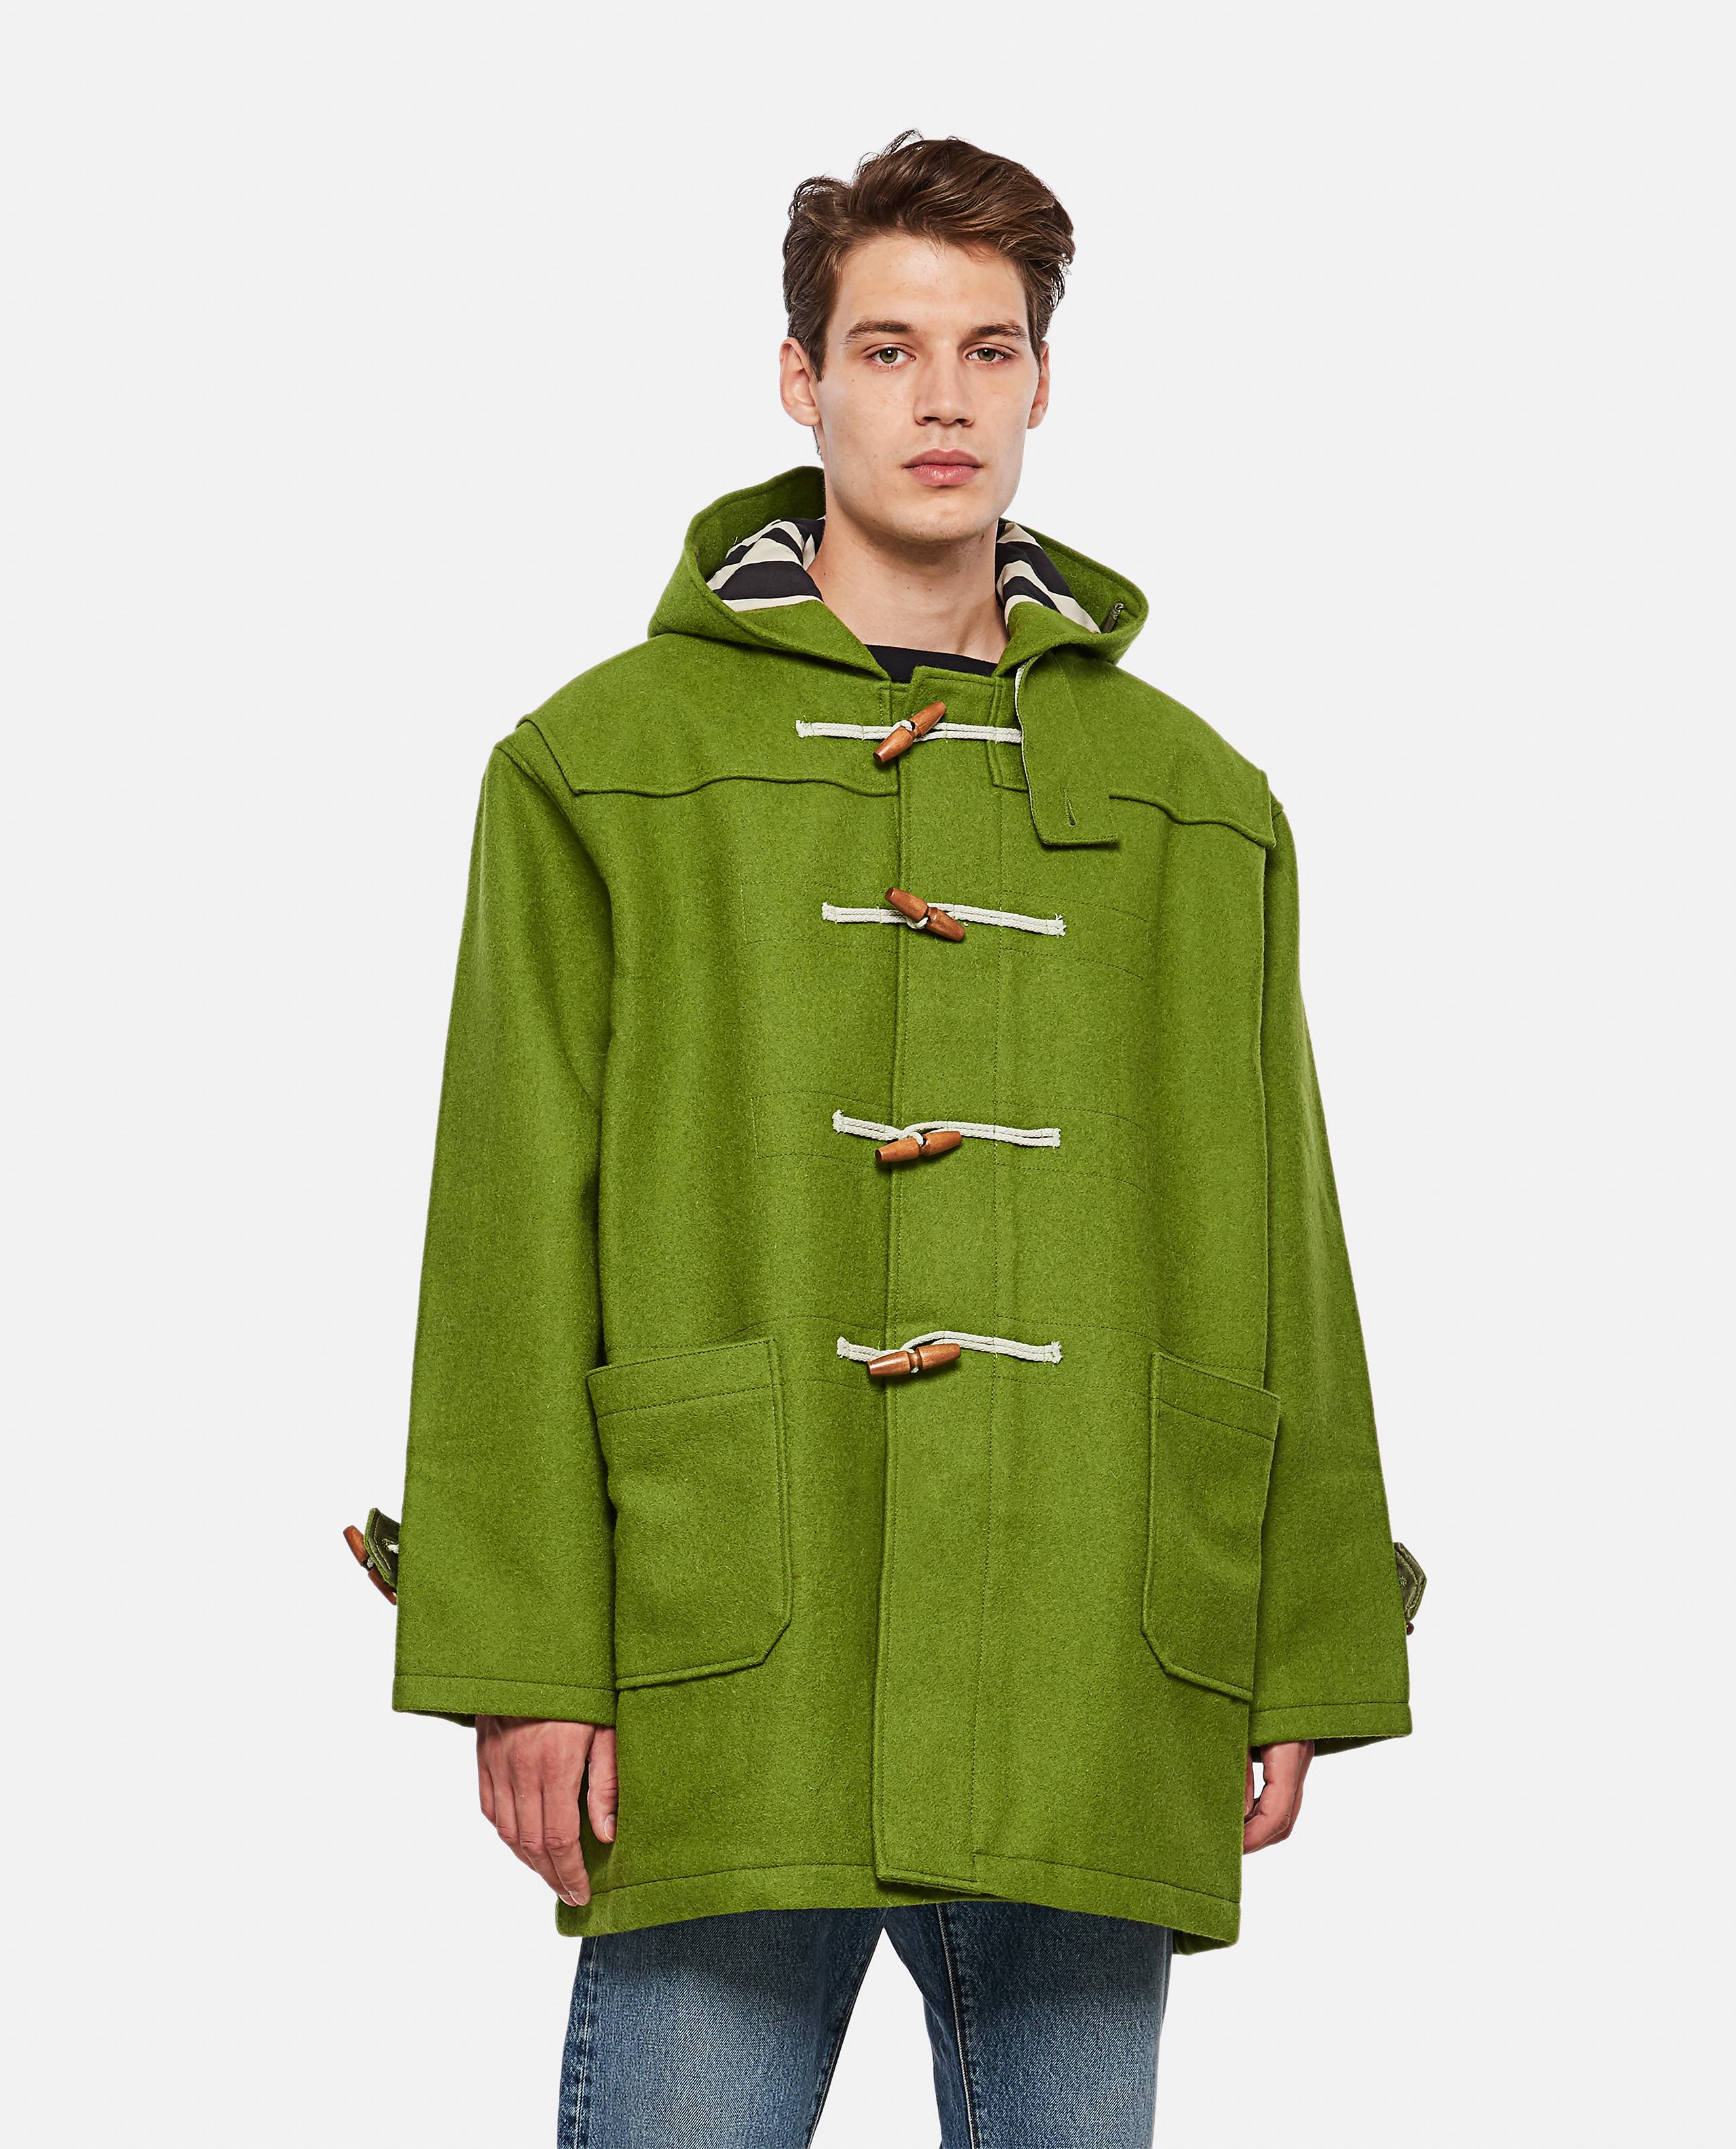 Levi Strauss & Co. LEVI'S VINTAGE CLOTHING DUFFEL COAT - Green - male - Size: S